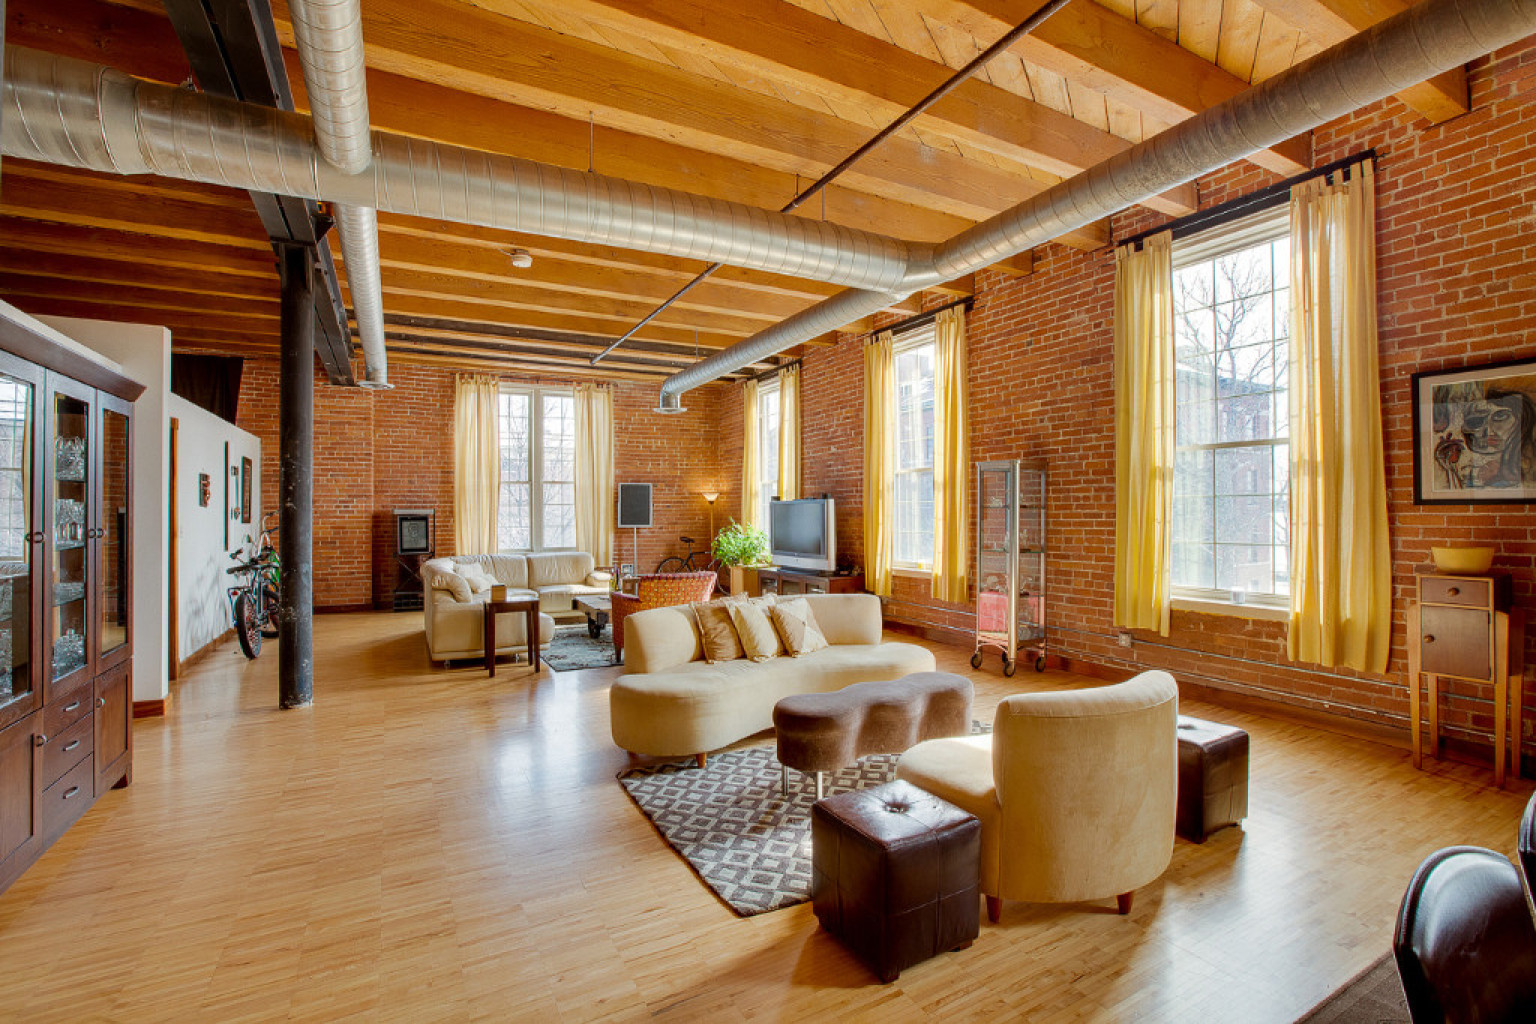 detroit lofts range from stunningly luxurious to affordable but get